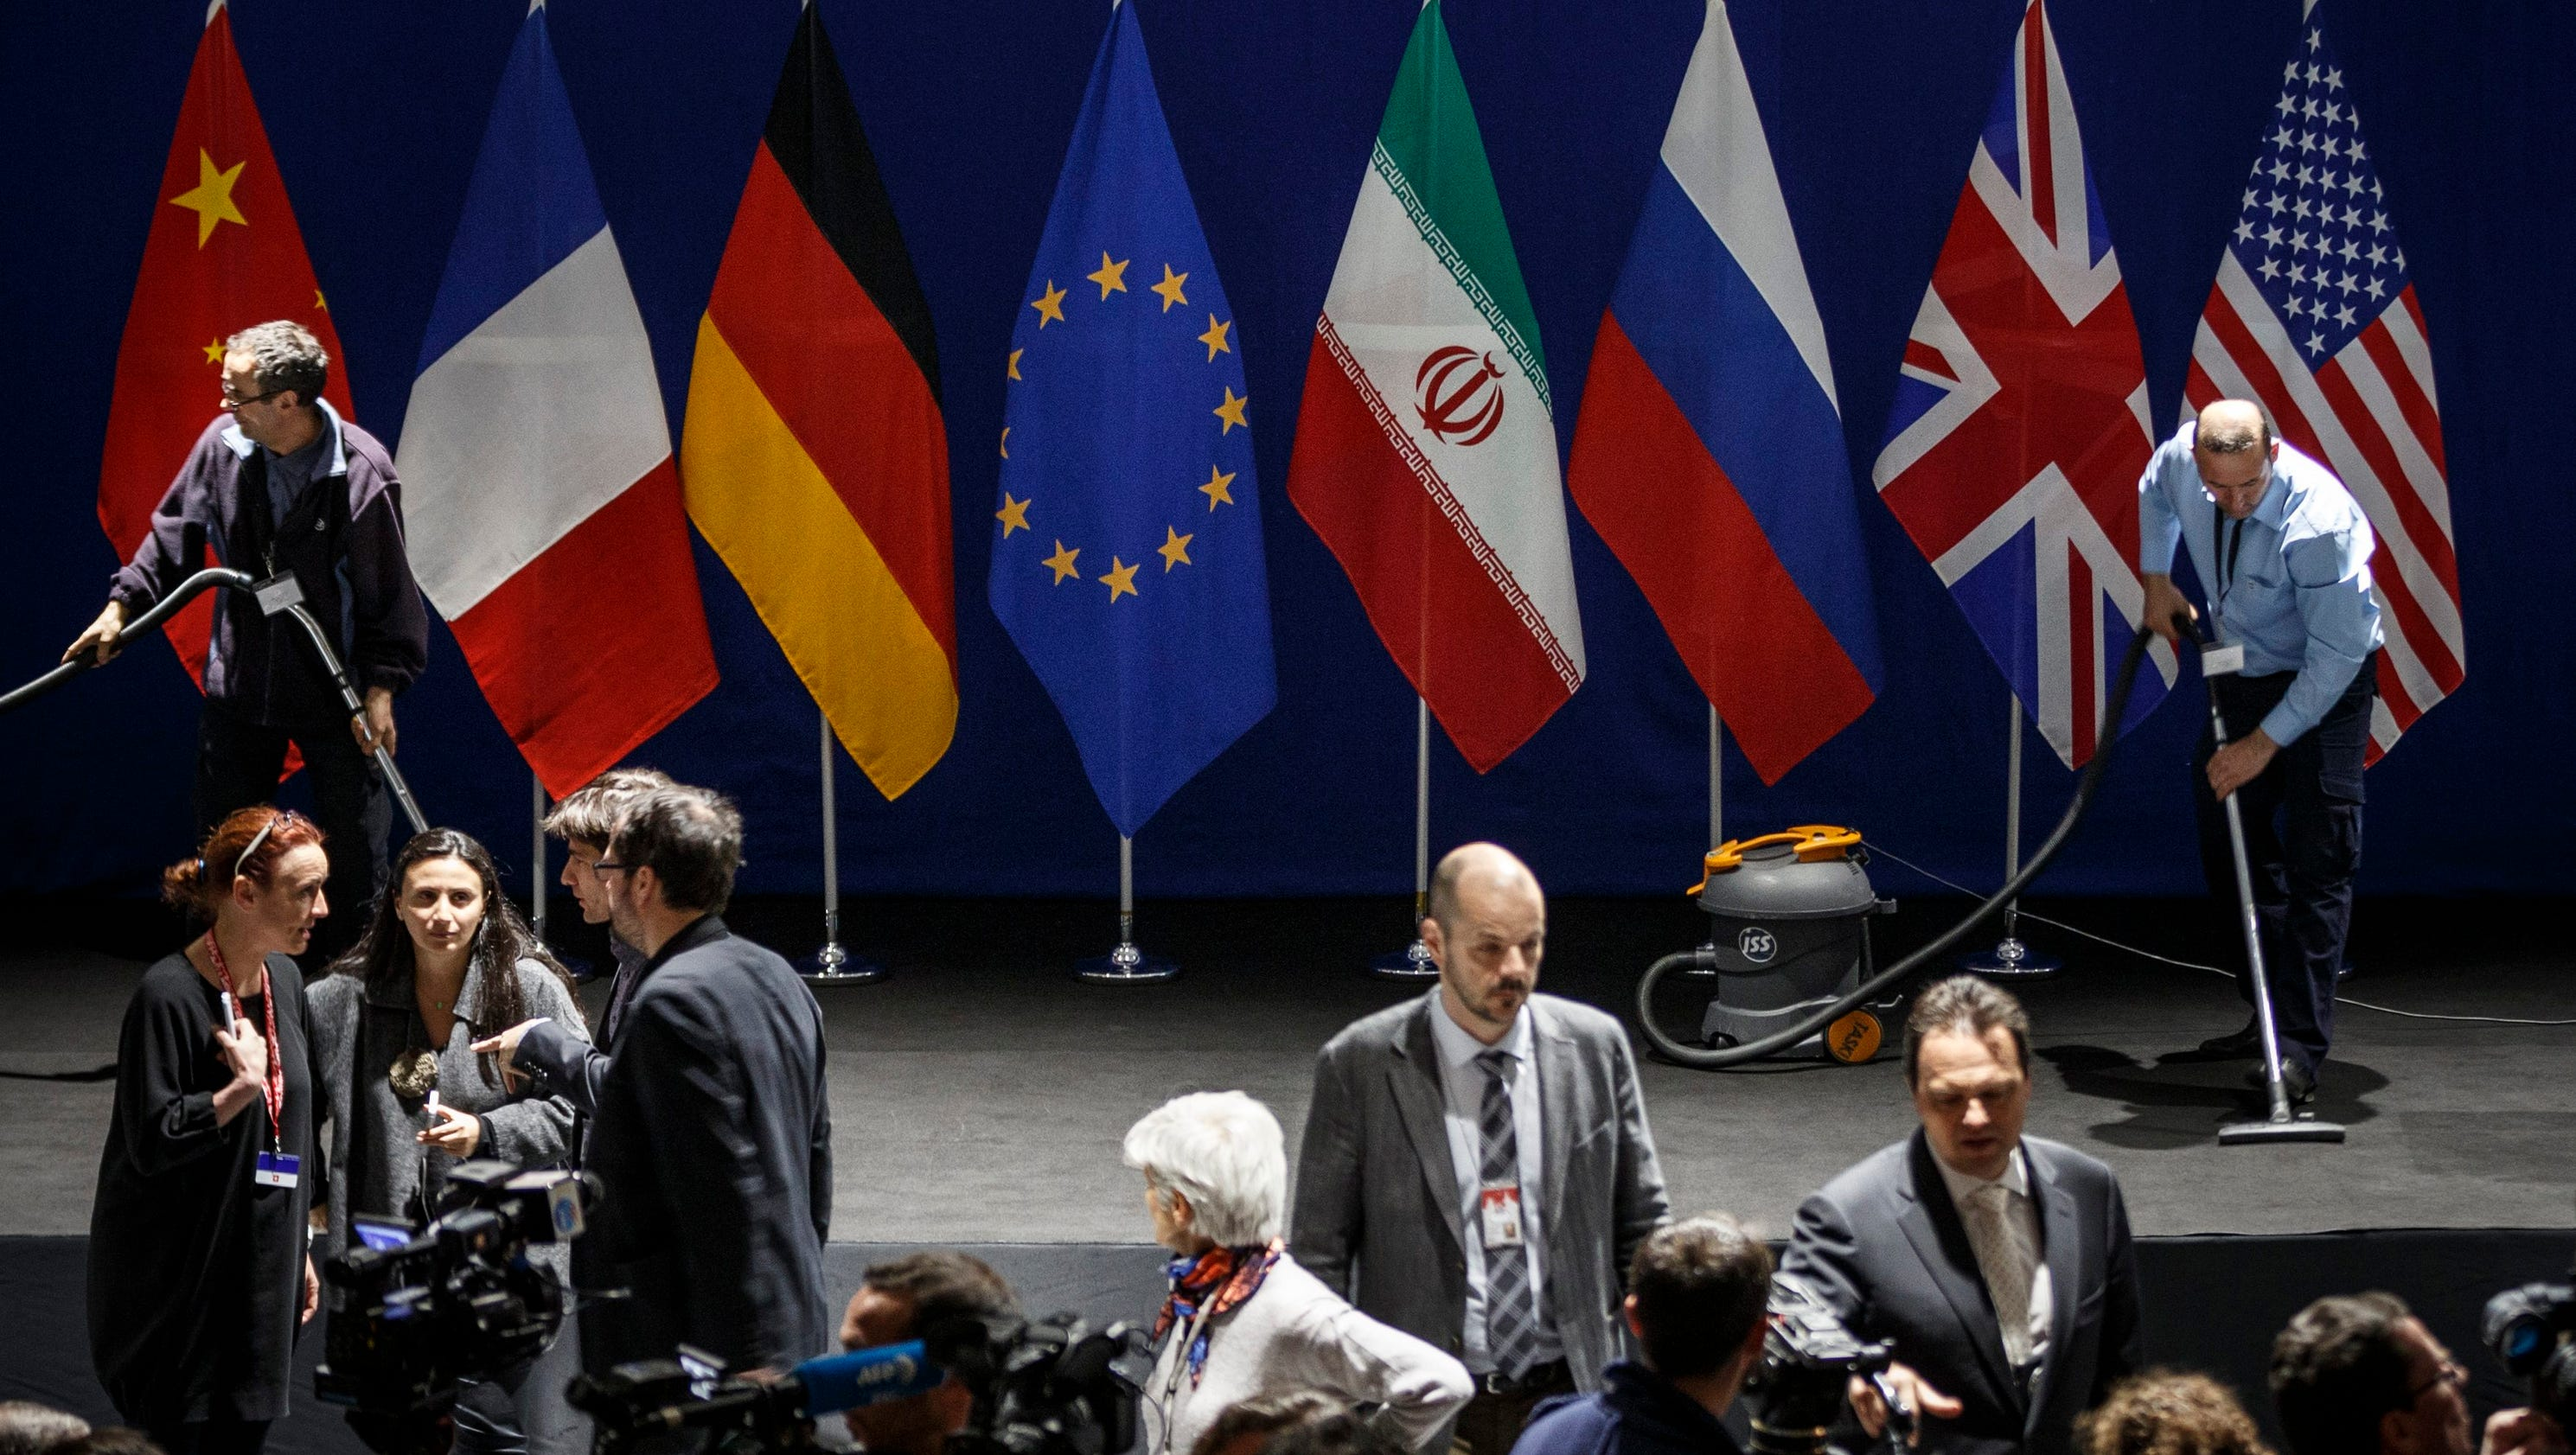 Iran Nuclear Agreement Means More Wrangling Ahead